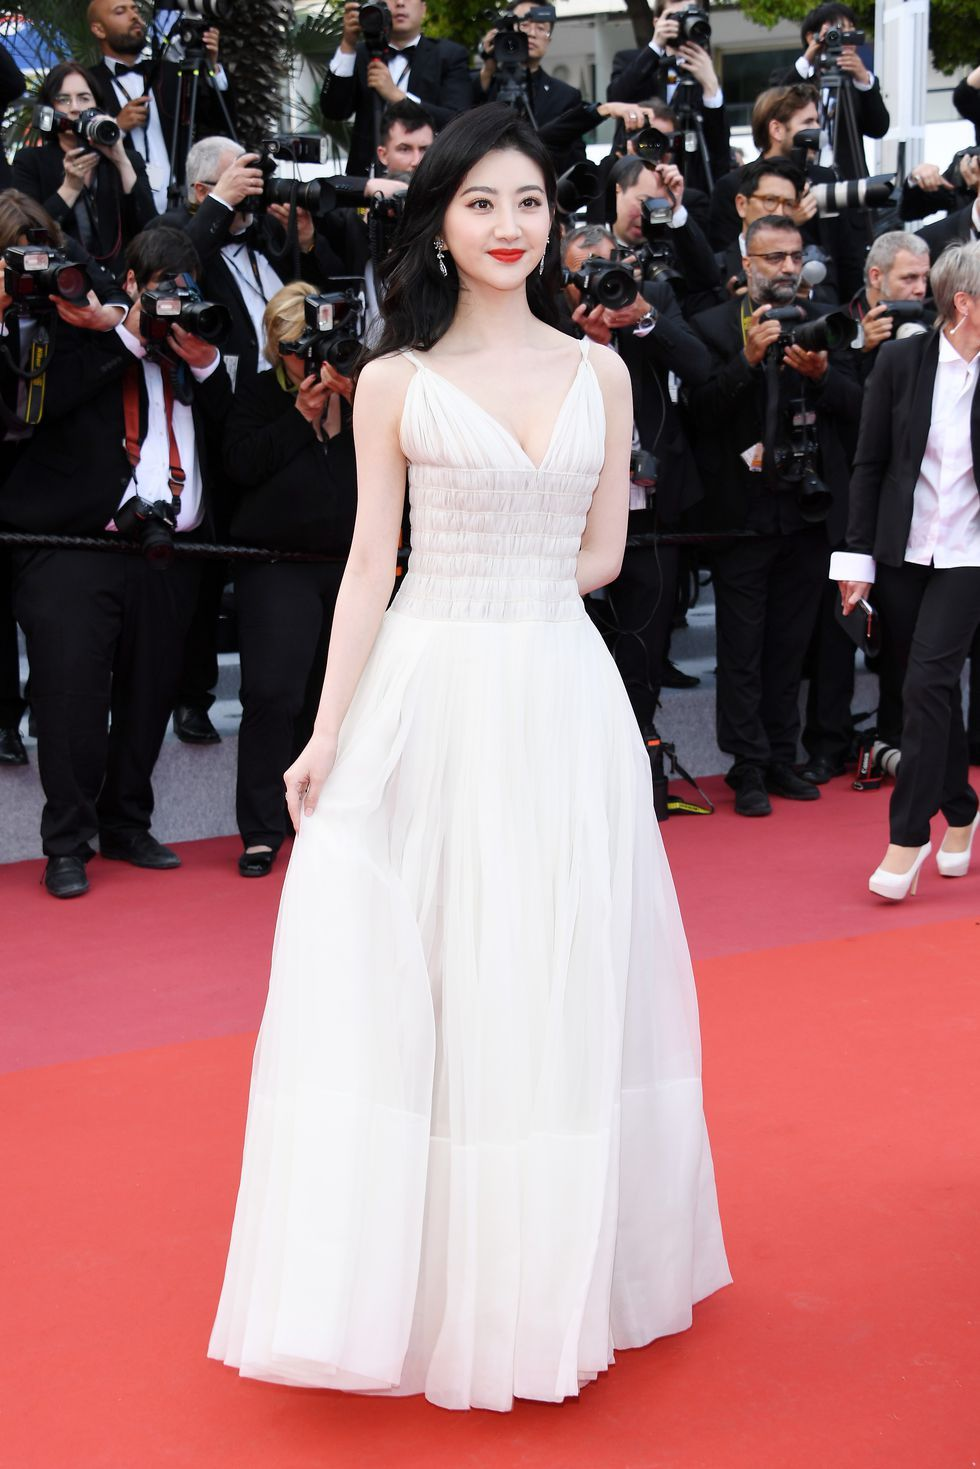 Jing Tian In Dior Haute Couture at the premiere of Les Misérables on May 15, 2019.